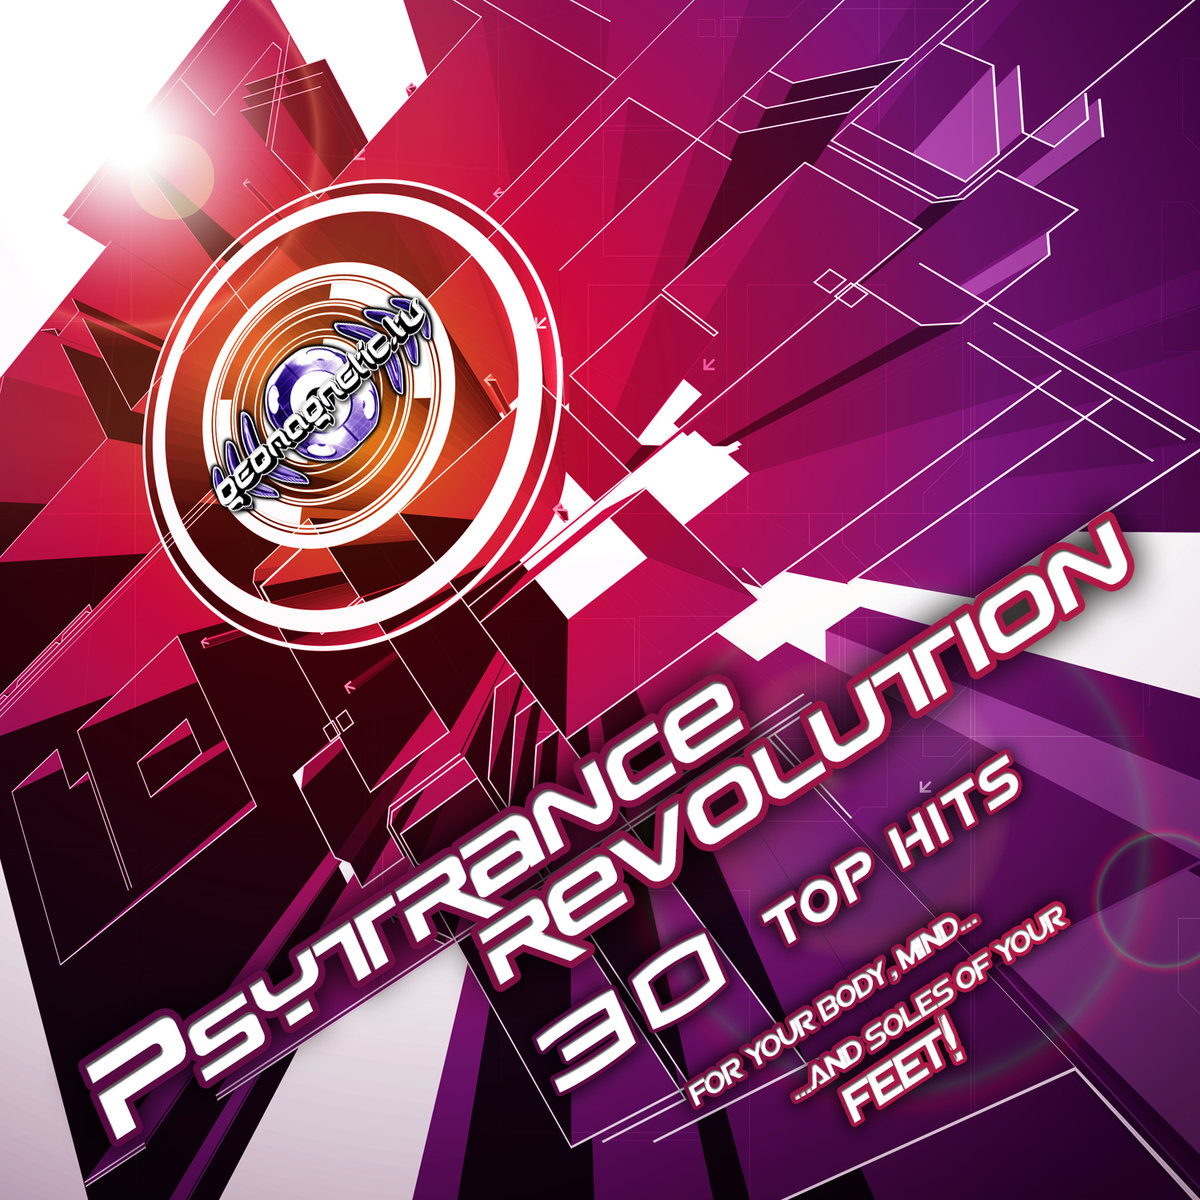 BPM - Boom @ 'Various Artists - Psytrance Revolution (30 Top Hits)' album (electronic, goa)